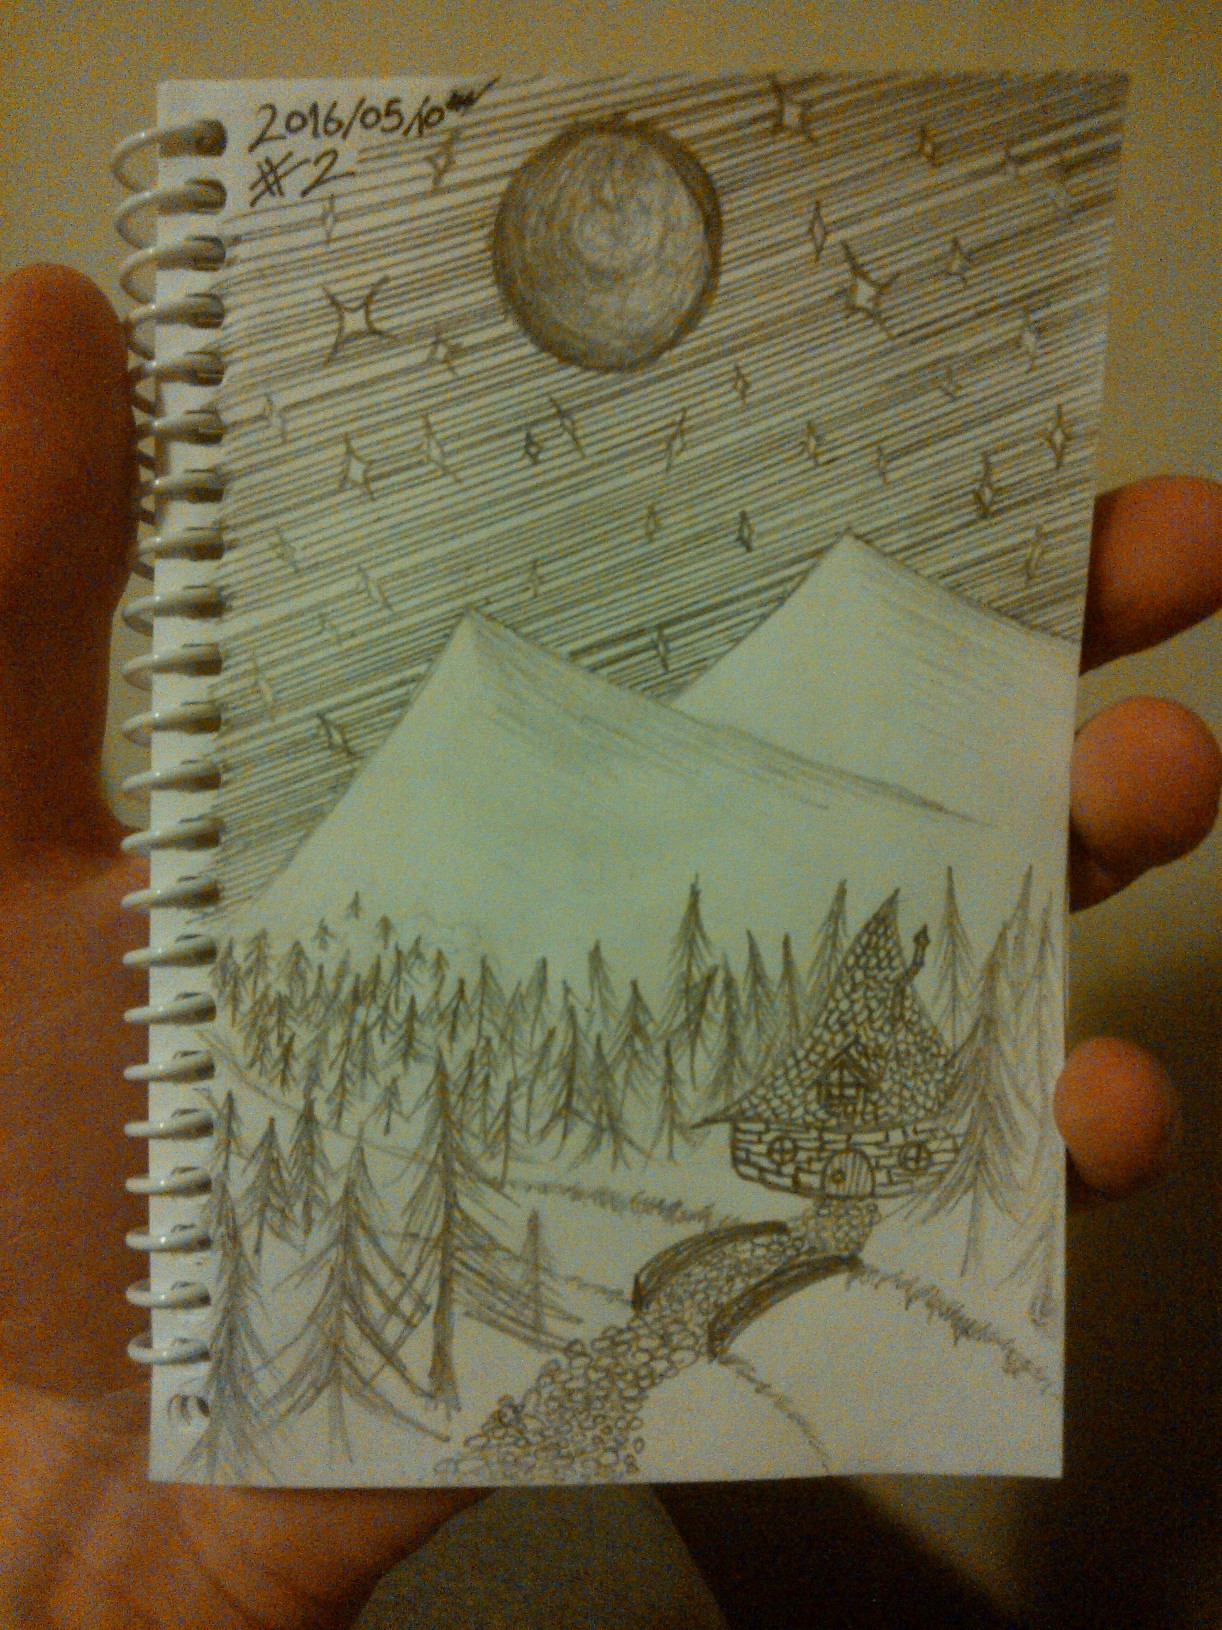 Every Day A Drawing #2: A Witches Cabin